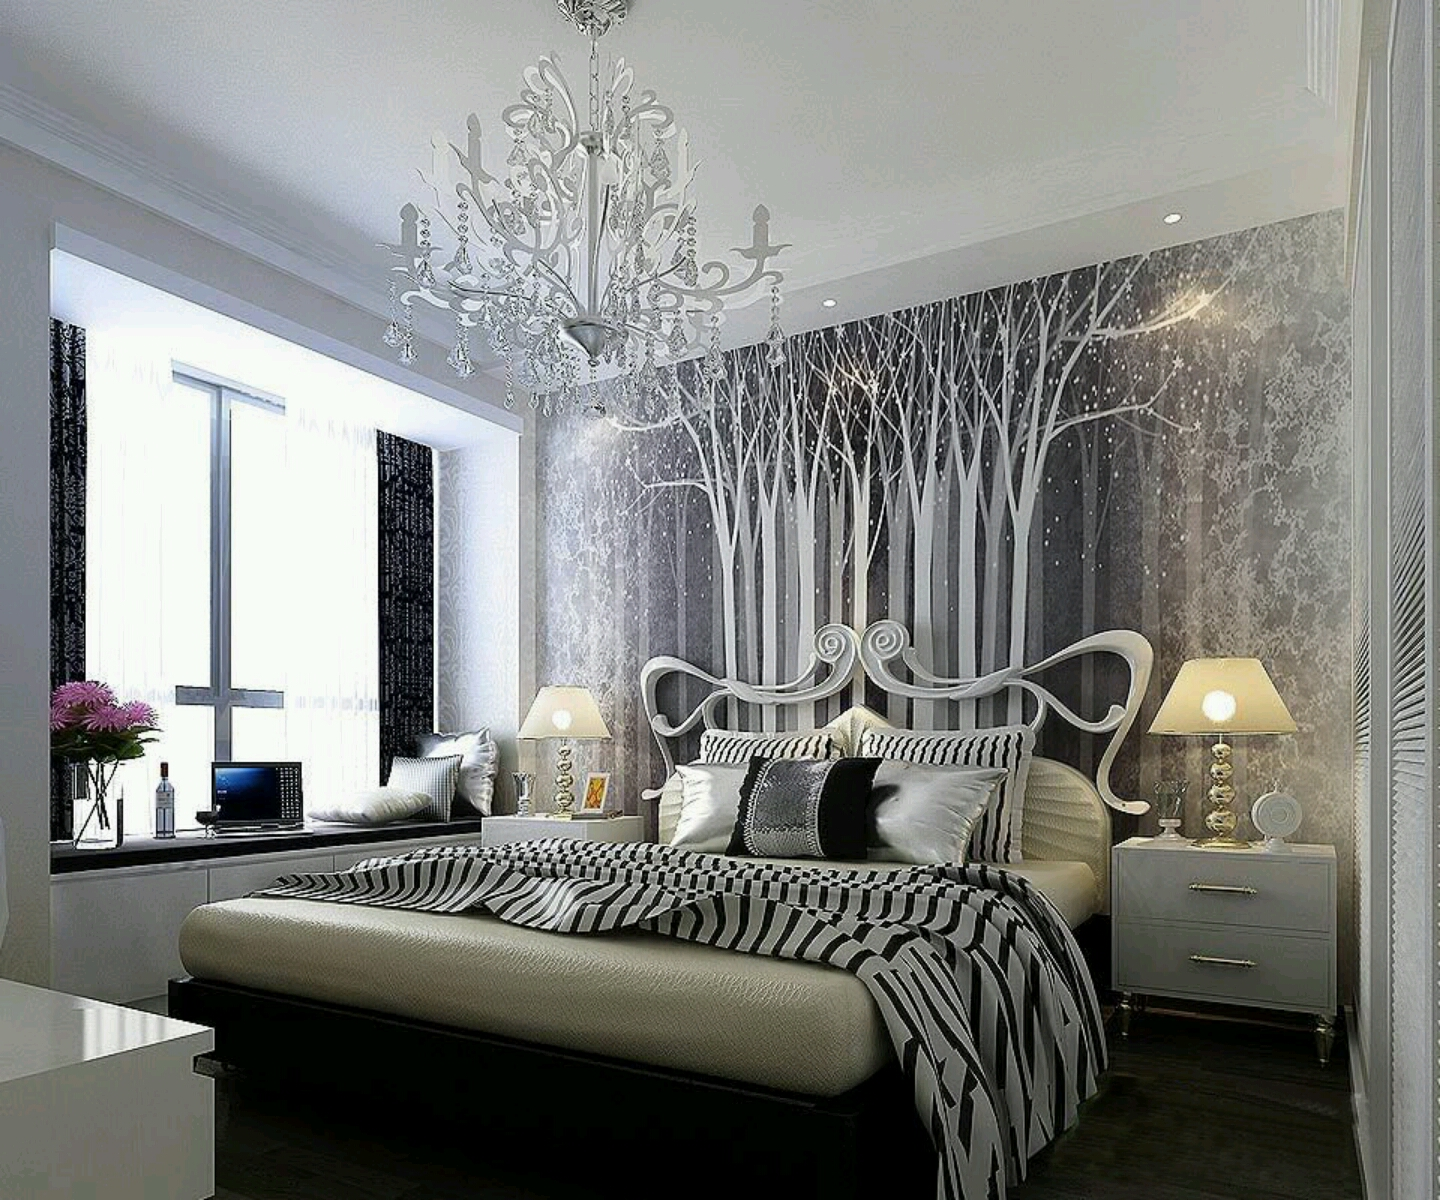 Beautiful bedrooms ideas - large and beautiful photos. Photo to ...